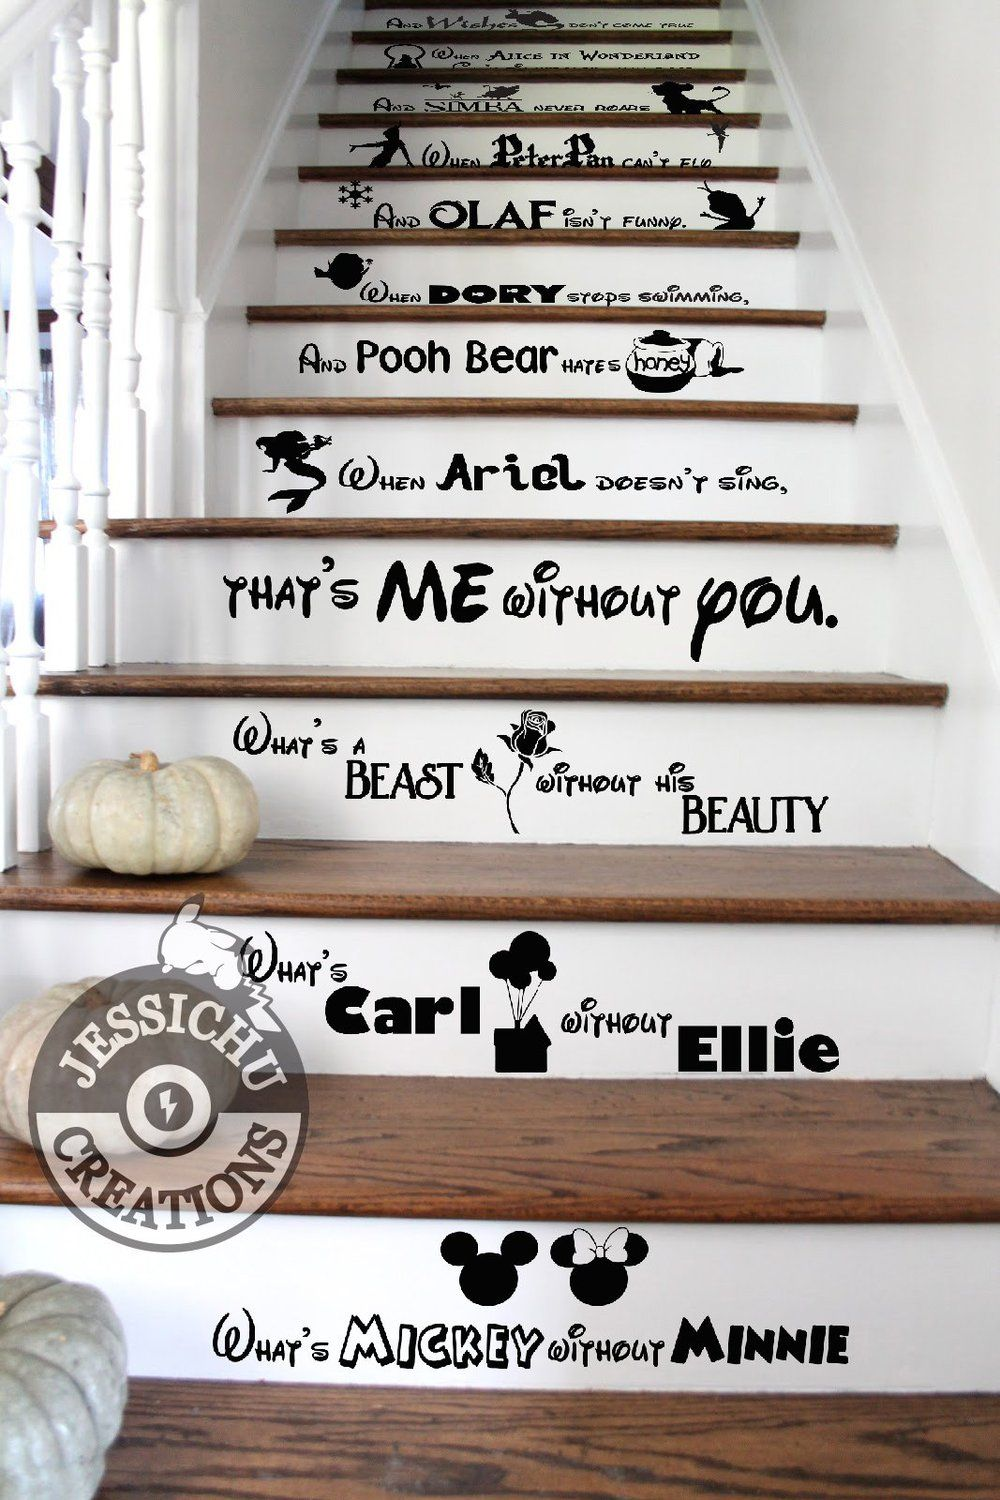 What's Mickey Without Minnie Stairs Vinyl Decal - Home Decor Decals #disneyhousedecor